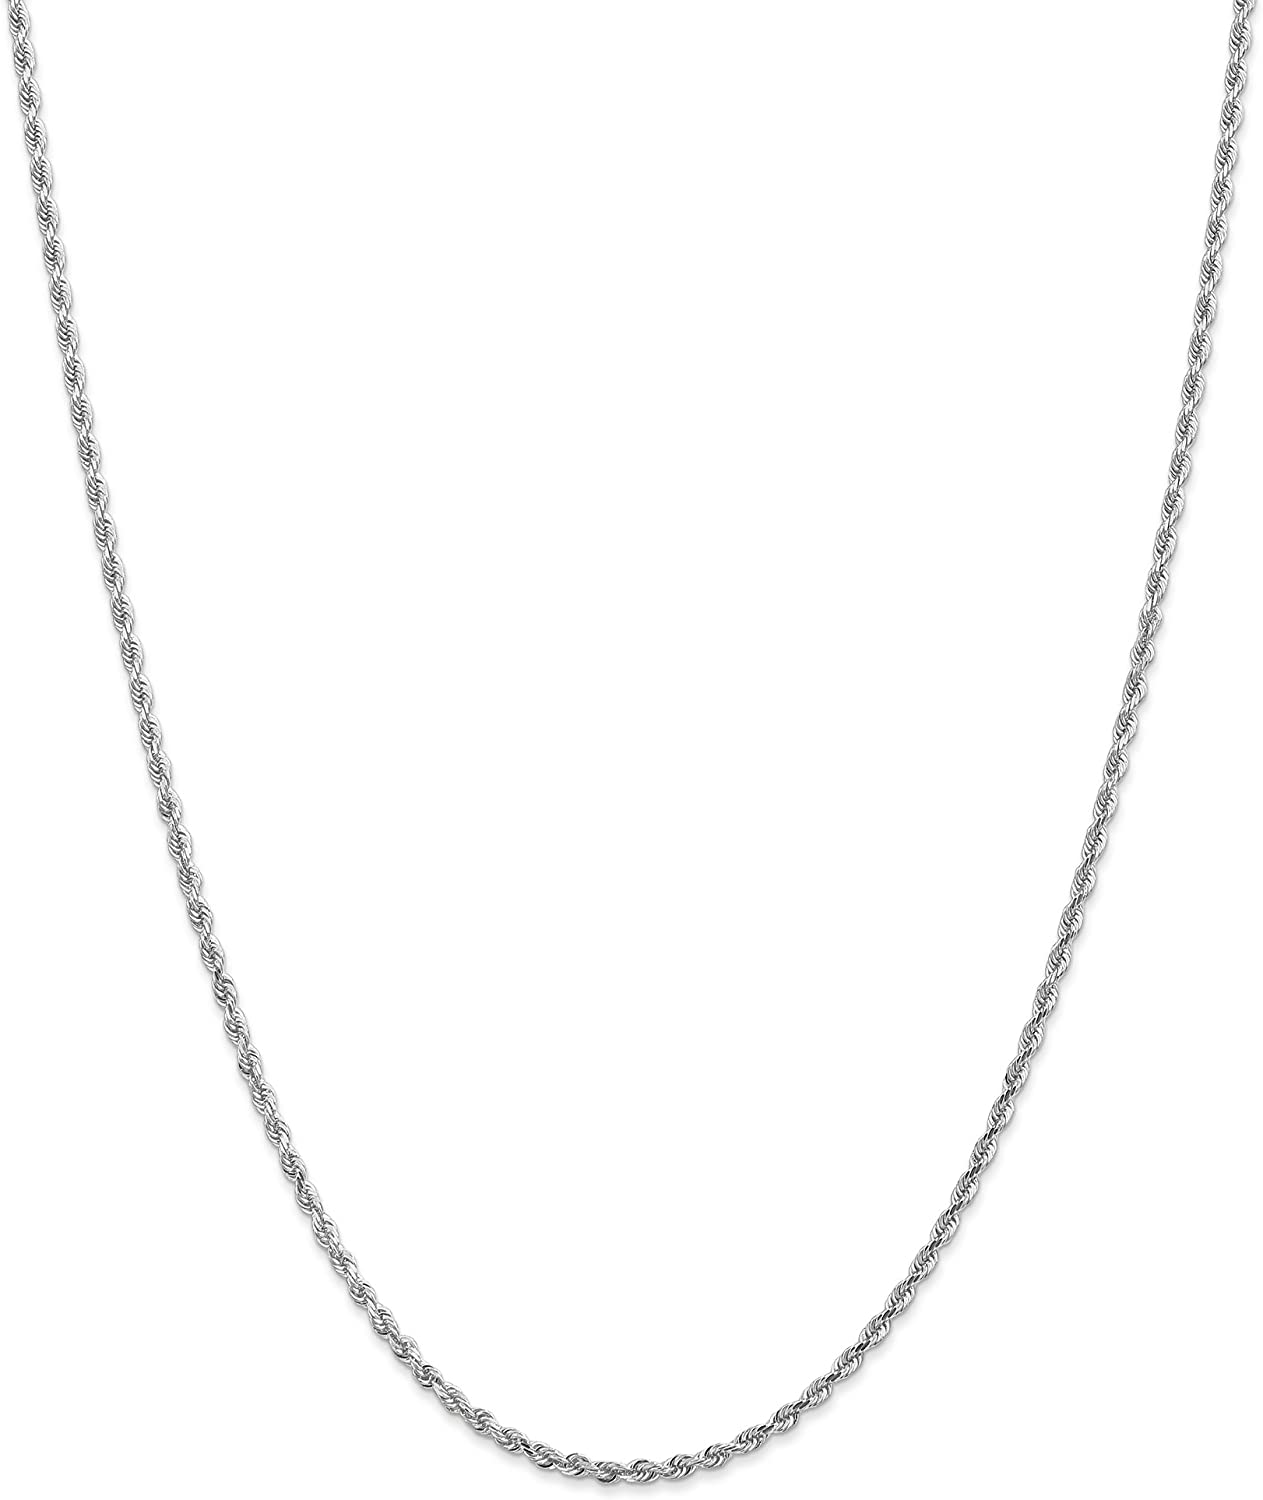 14k White Gold Rope Chain Anklet with Secure Lobster Clasp Fine Jewelry Ideal Gifts For Women